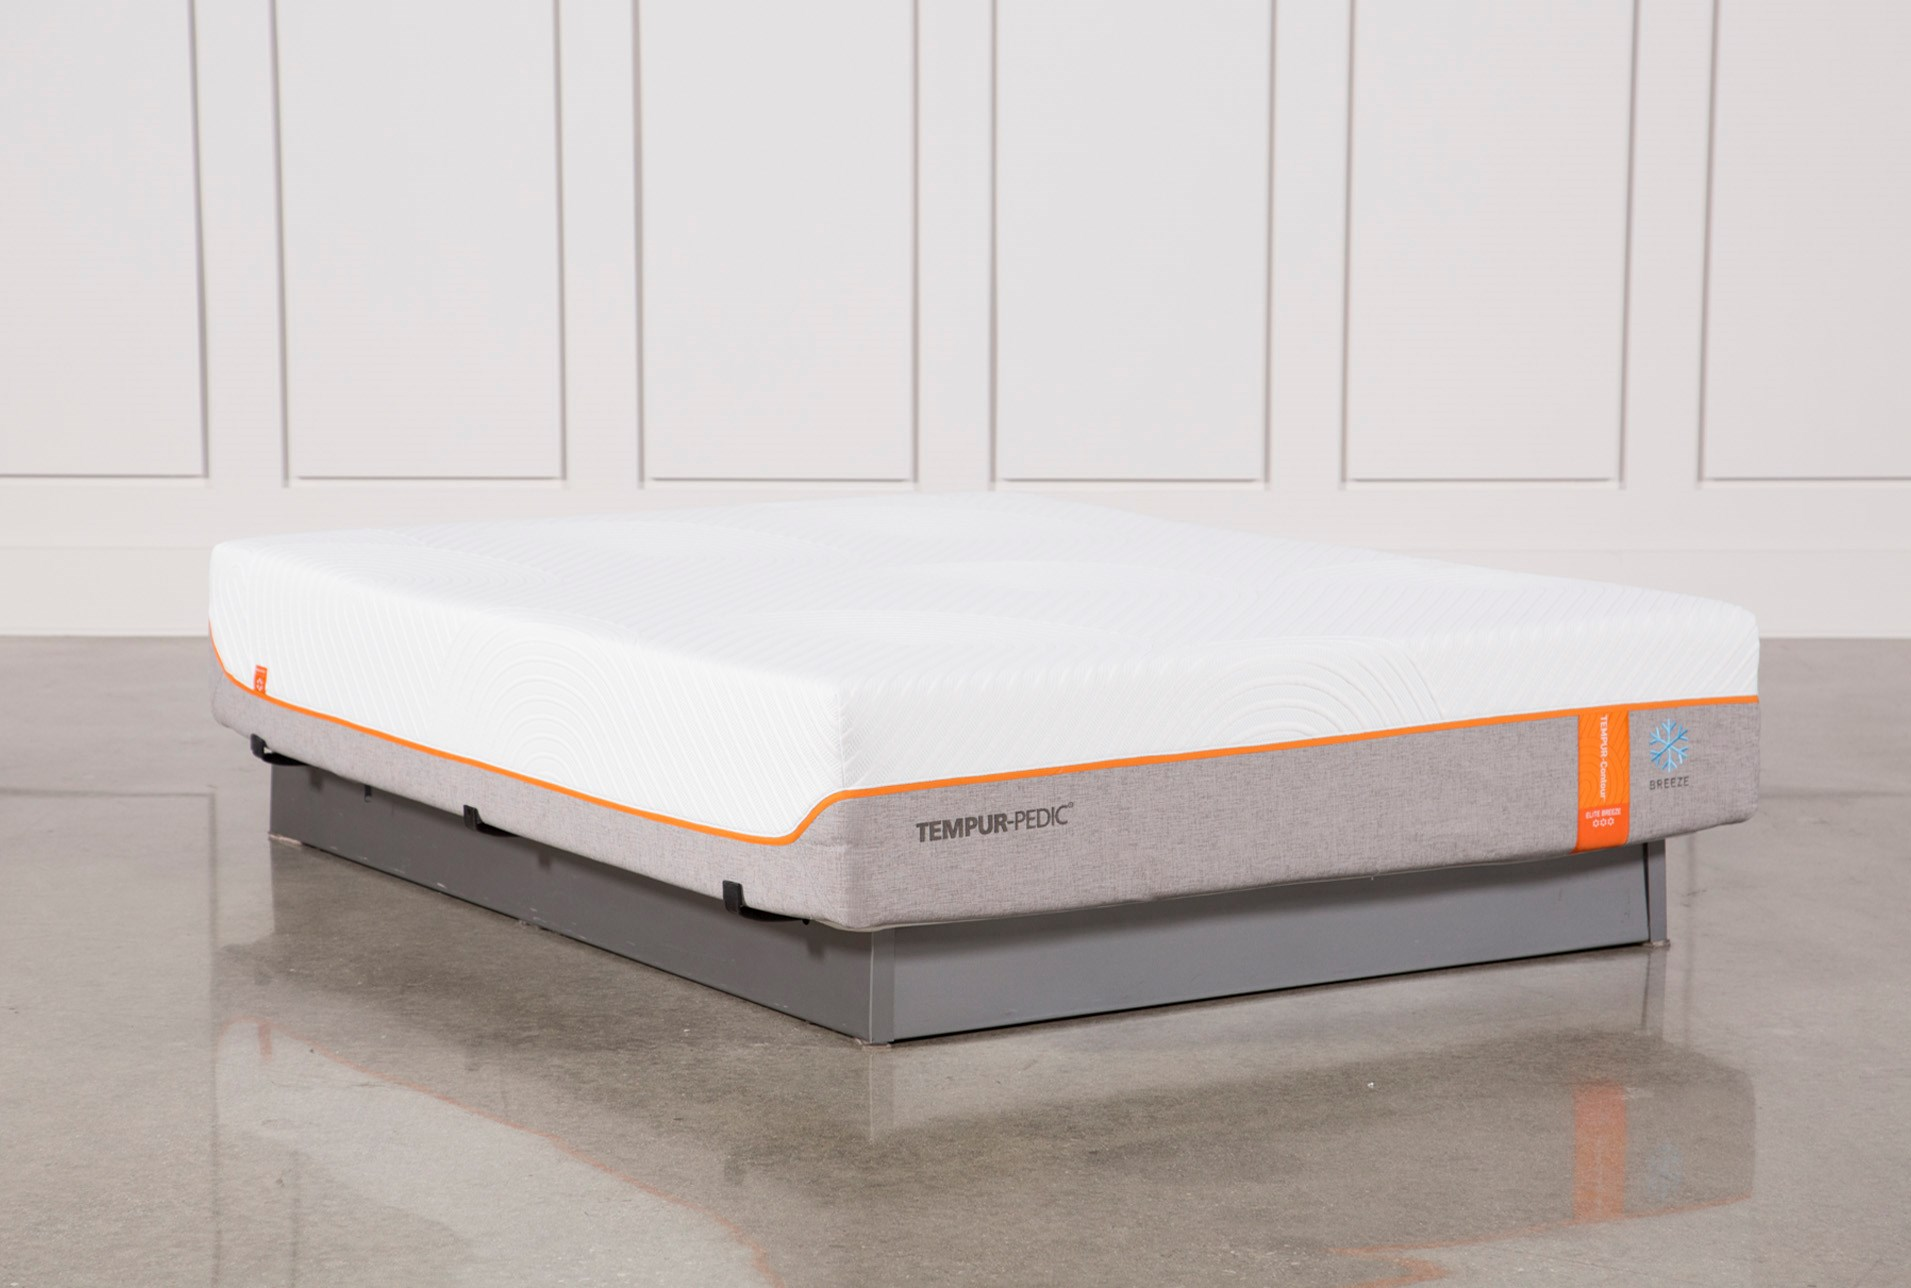 x deluxebed pedic close legacy pd tempur the out pricing by mattresses mattress